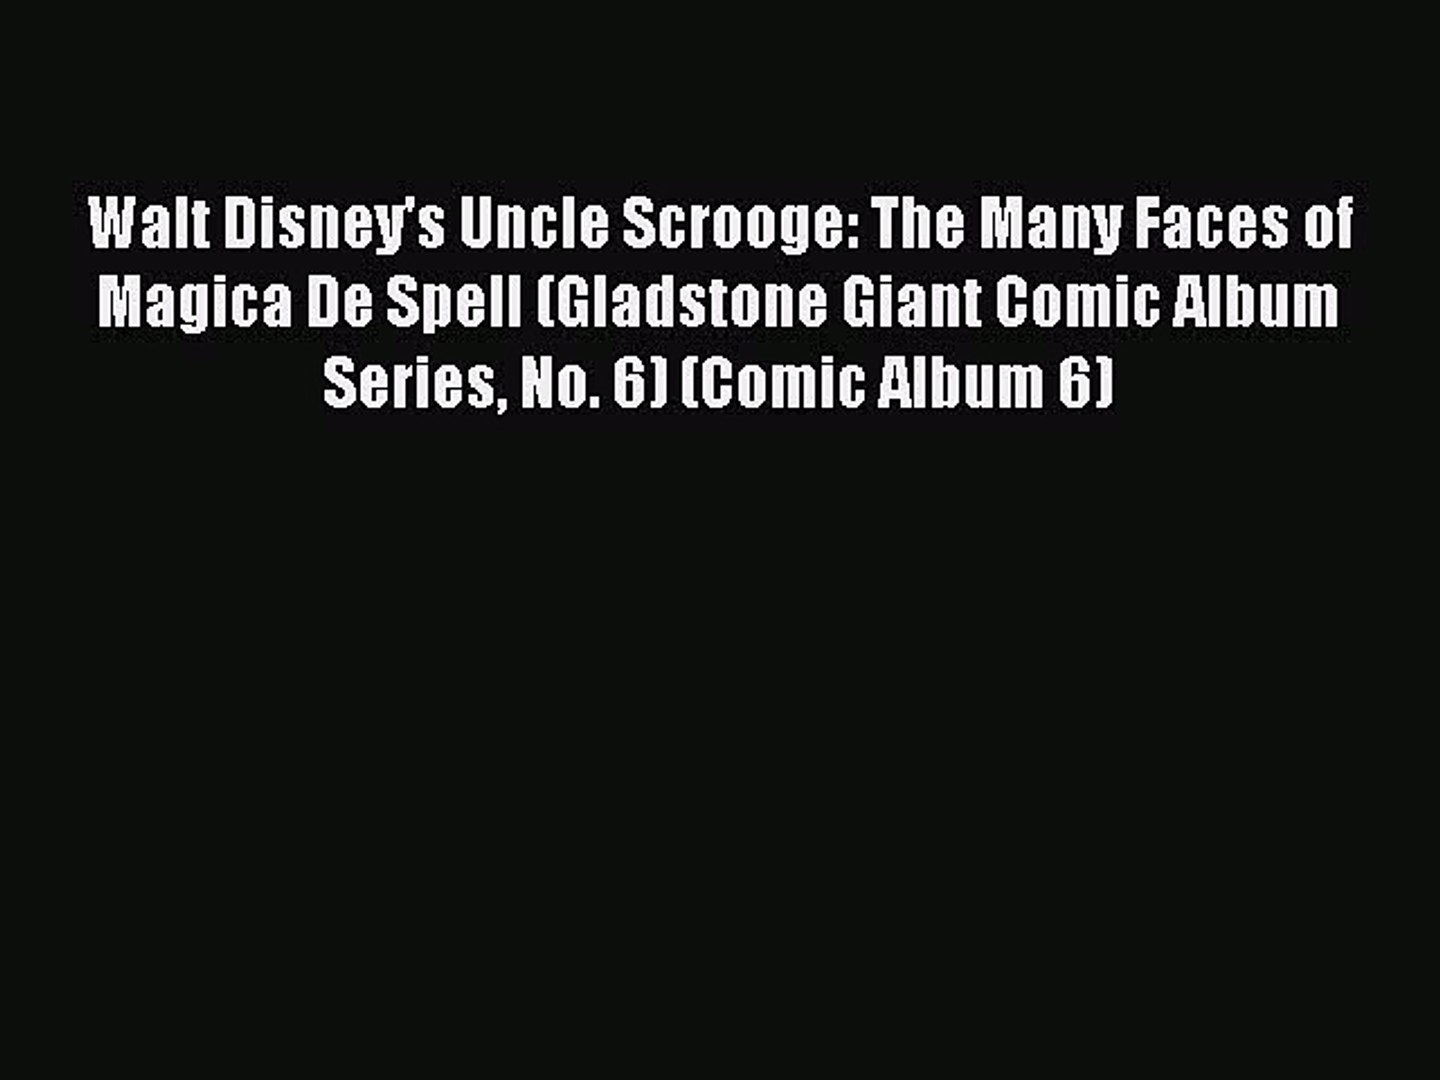 [PDF] Walt Disney's Uncle Scrooge: The Many Faces of Magica De Spell (Gladstone Giant Comic